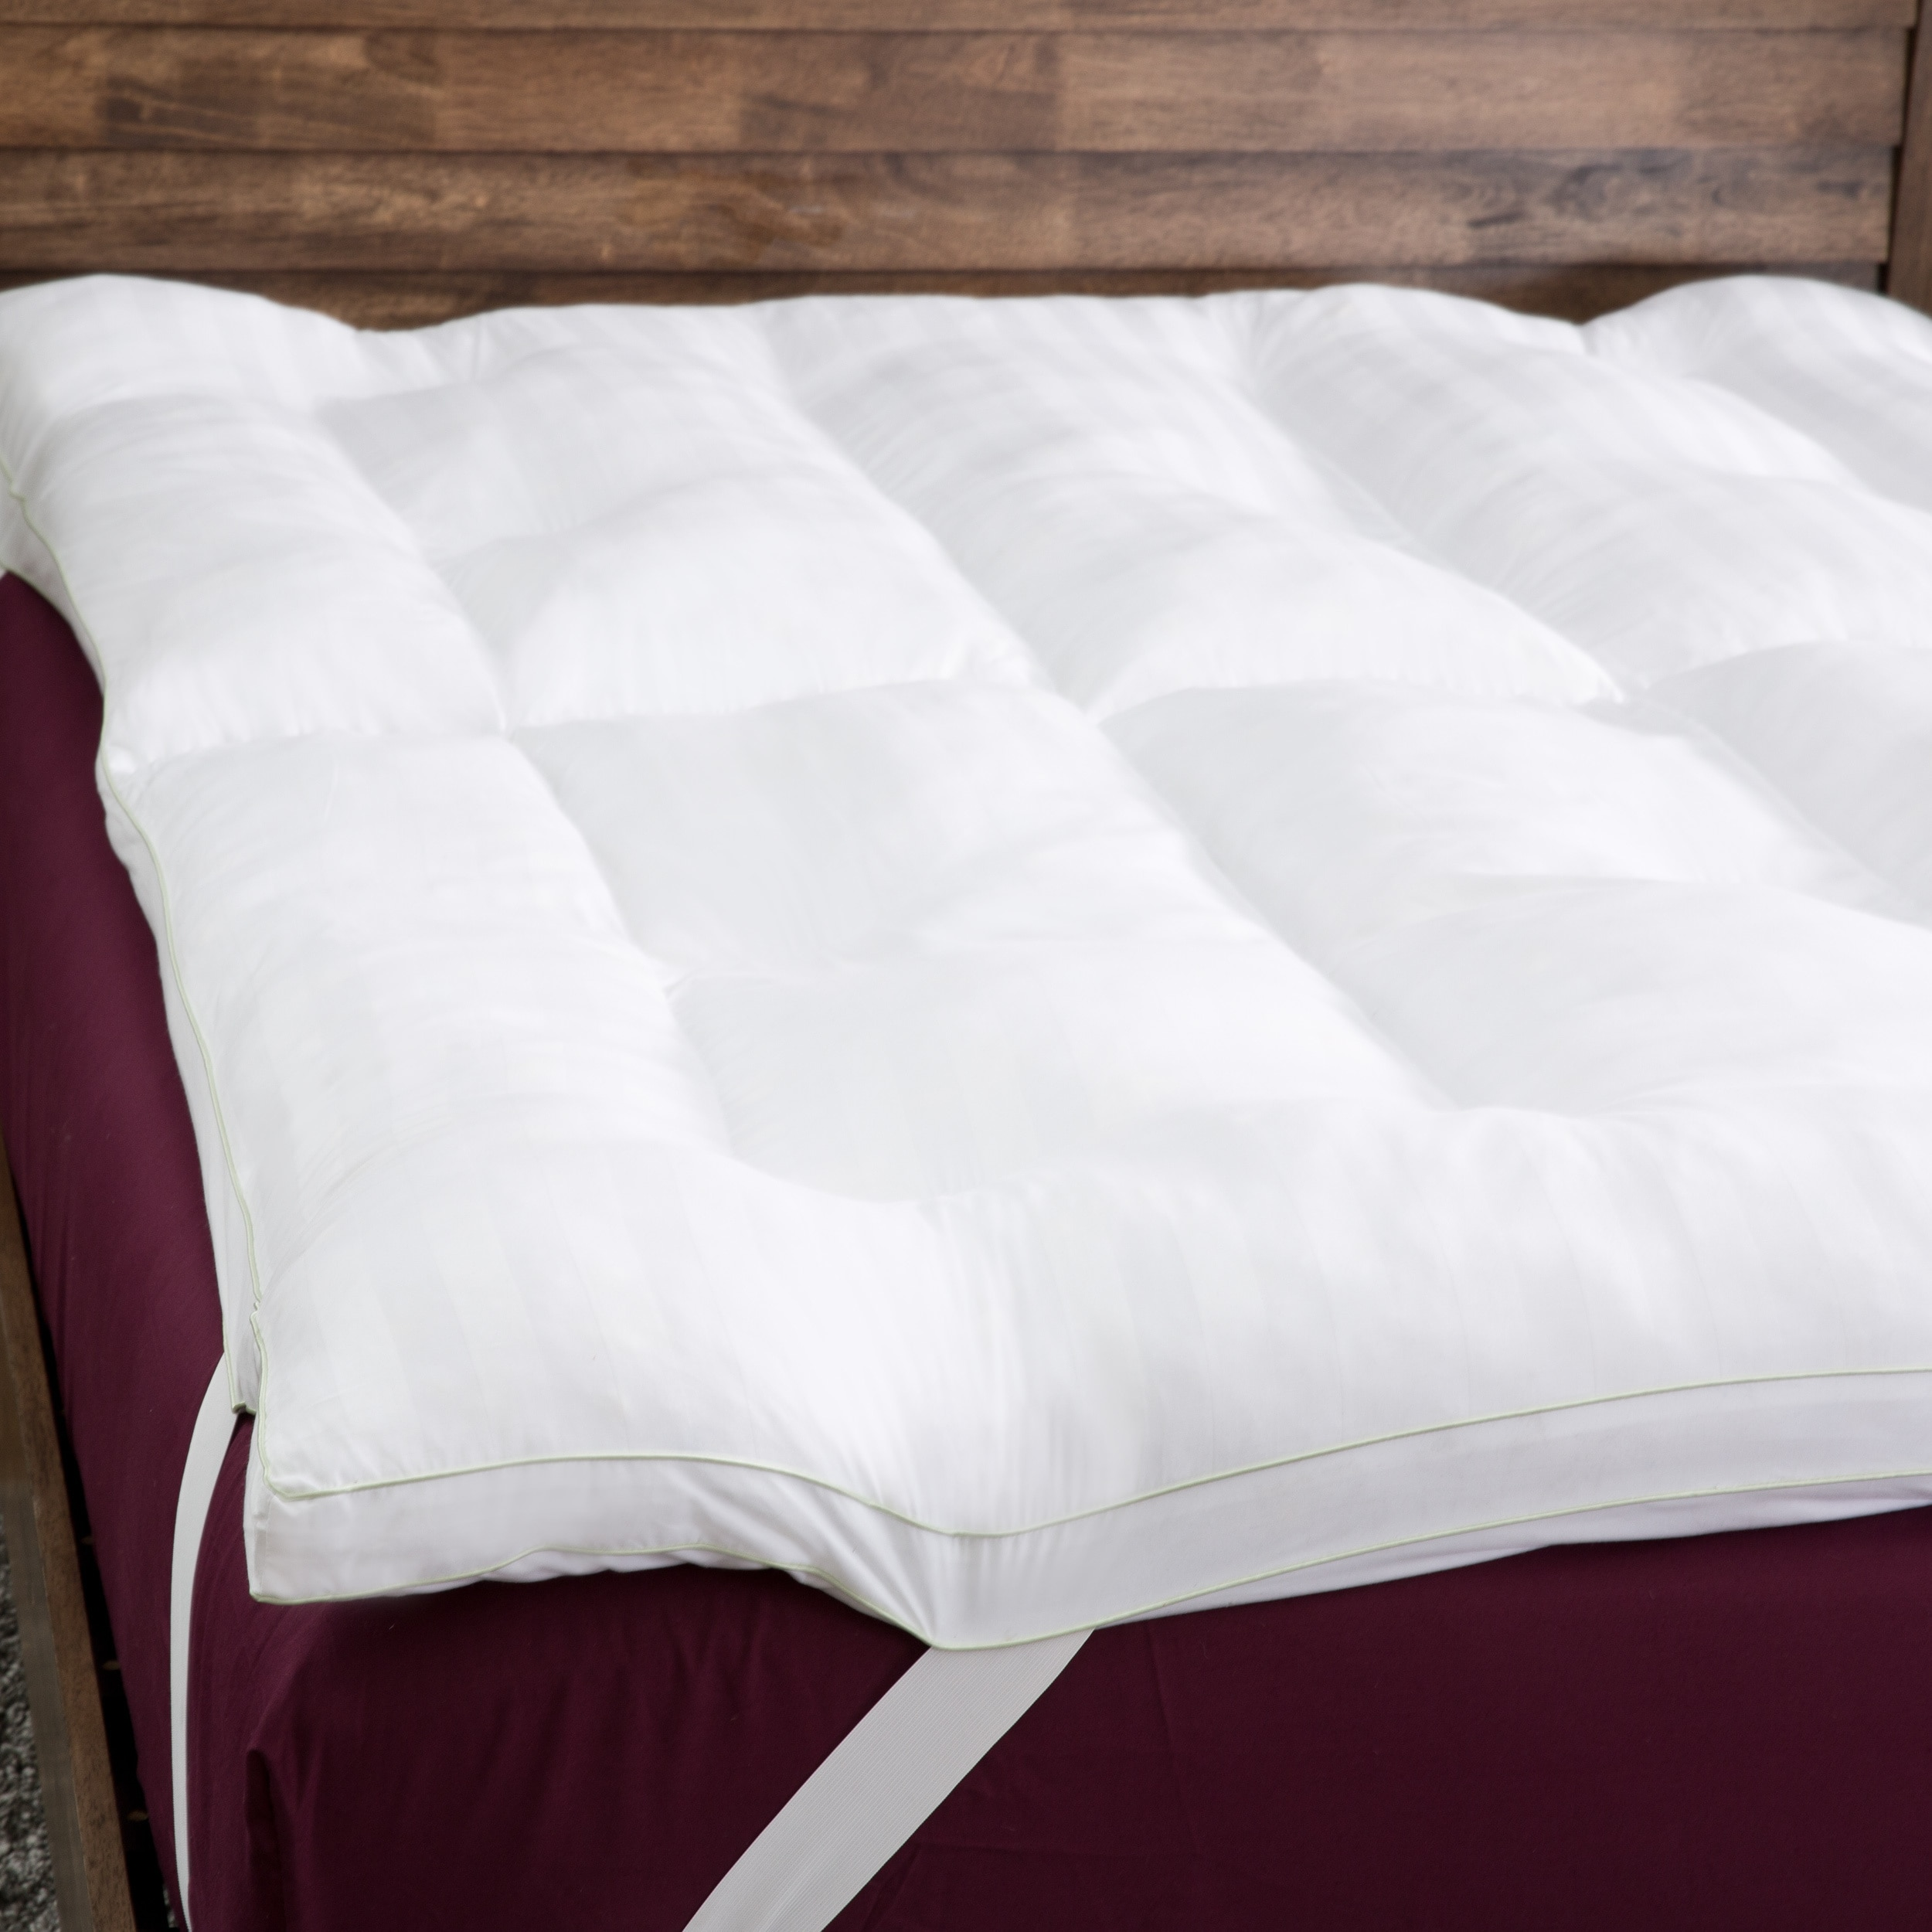 toppers foam your glorious best and college mattress inch boost fiber full sleep walmart dual size quality limited orthopedic zone topper com year wa plush memory bright to for amazing comfort charm layer of authentic innovations gel pillow